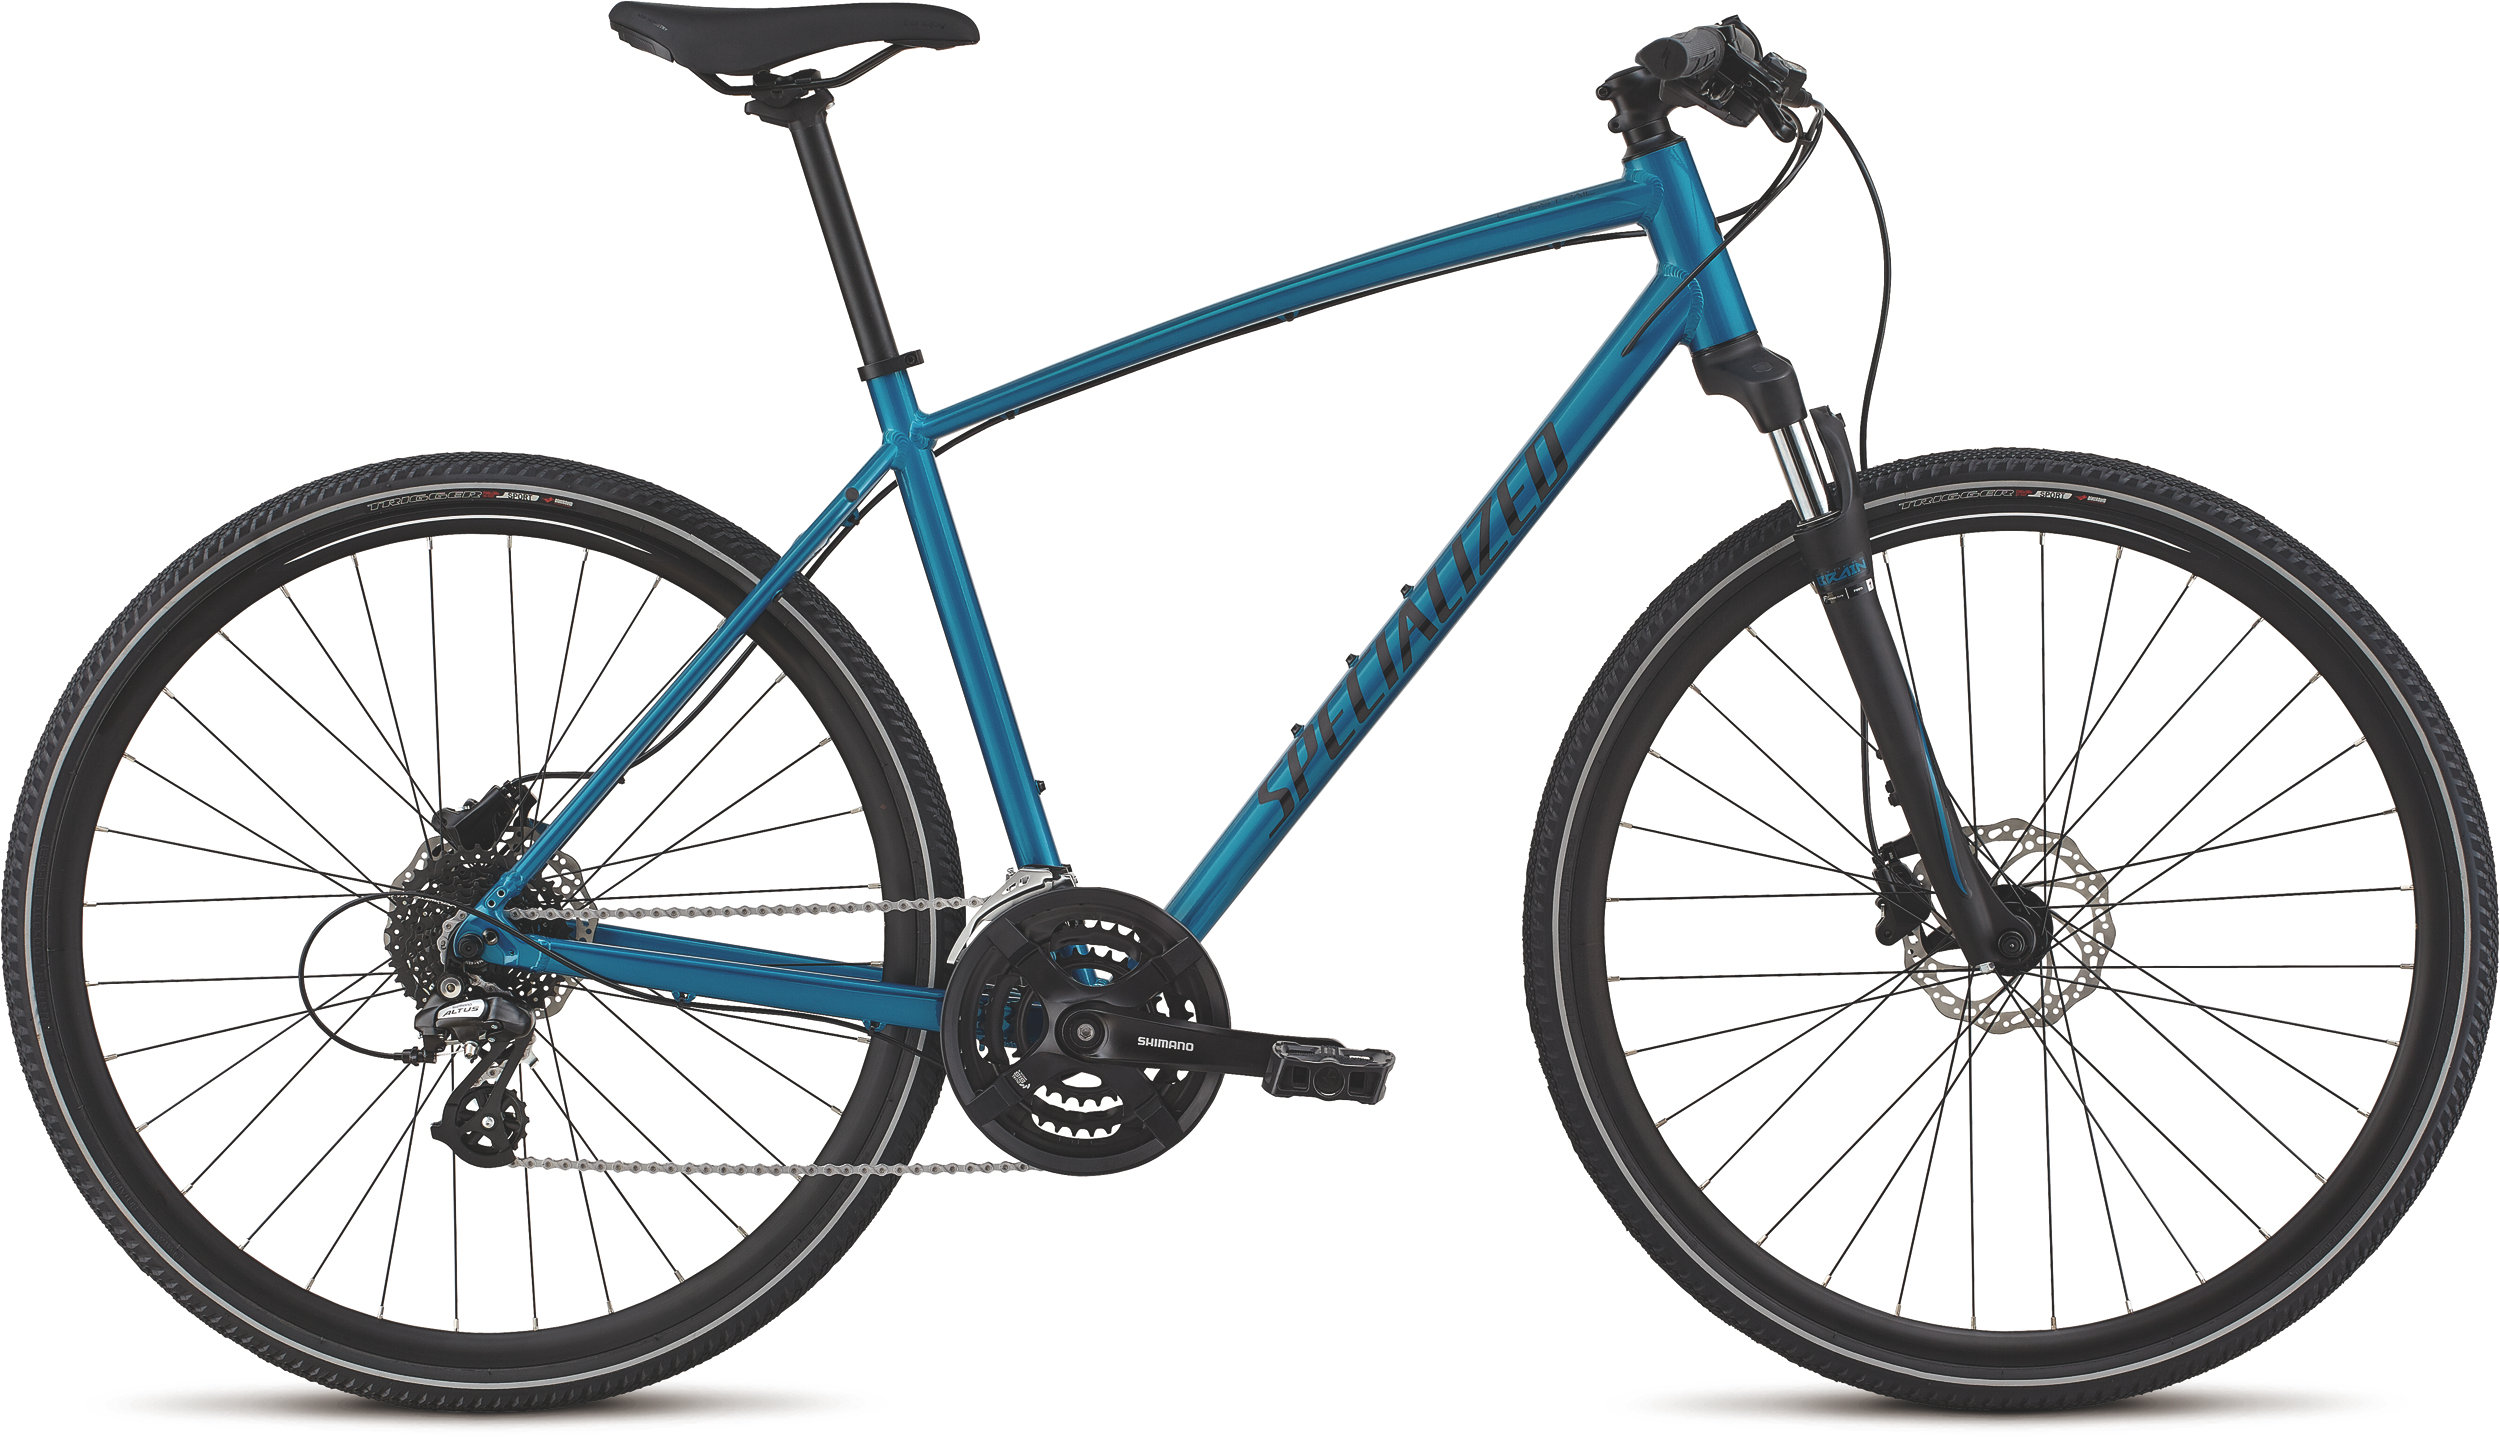 Specialized CrossTrail - Hydraulic Disc Teal Tint/Black/Flake Silver Reflective M - Specialized CrossTrail - Hydraulic Disc Teal Tint/Black/Flake Silver Reflective M